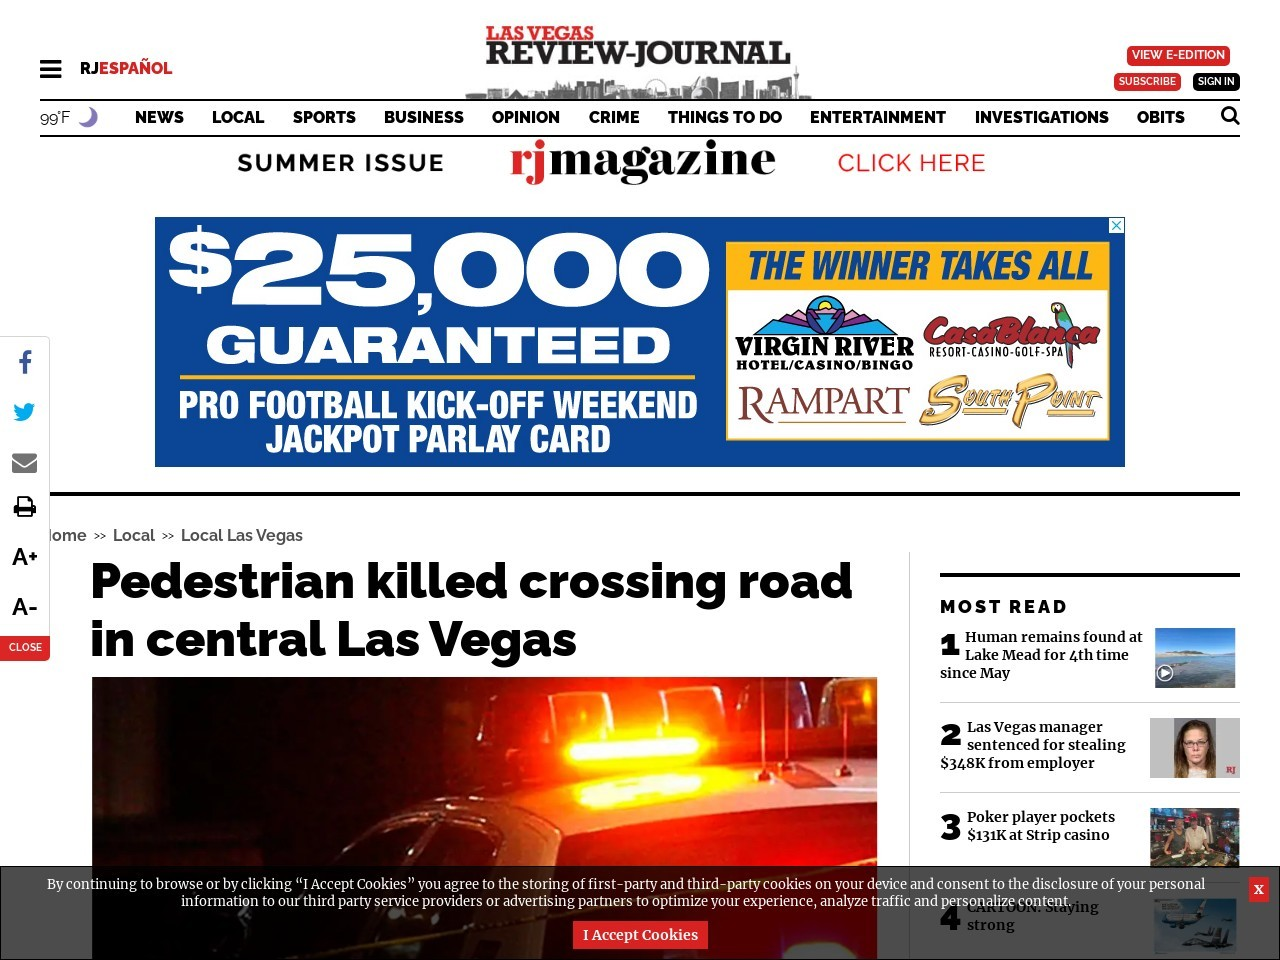 Pedestrian crossing road killed in crash in central Las Vegas